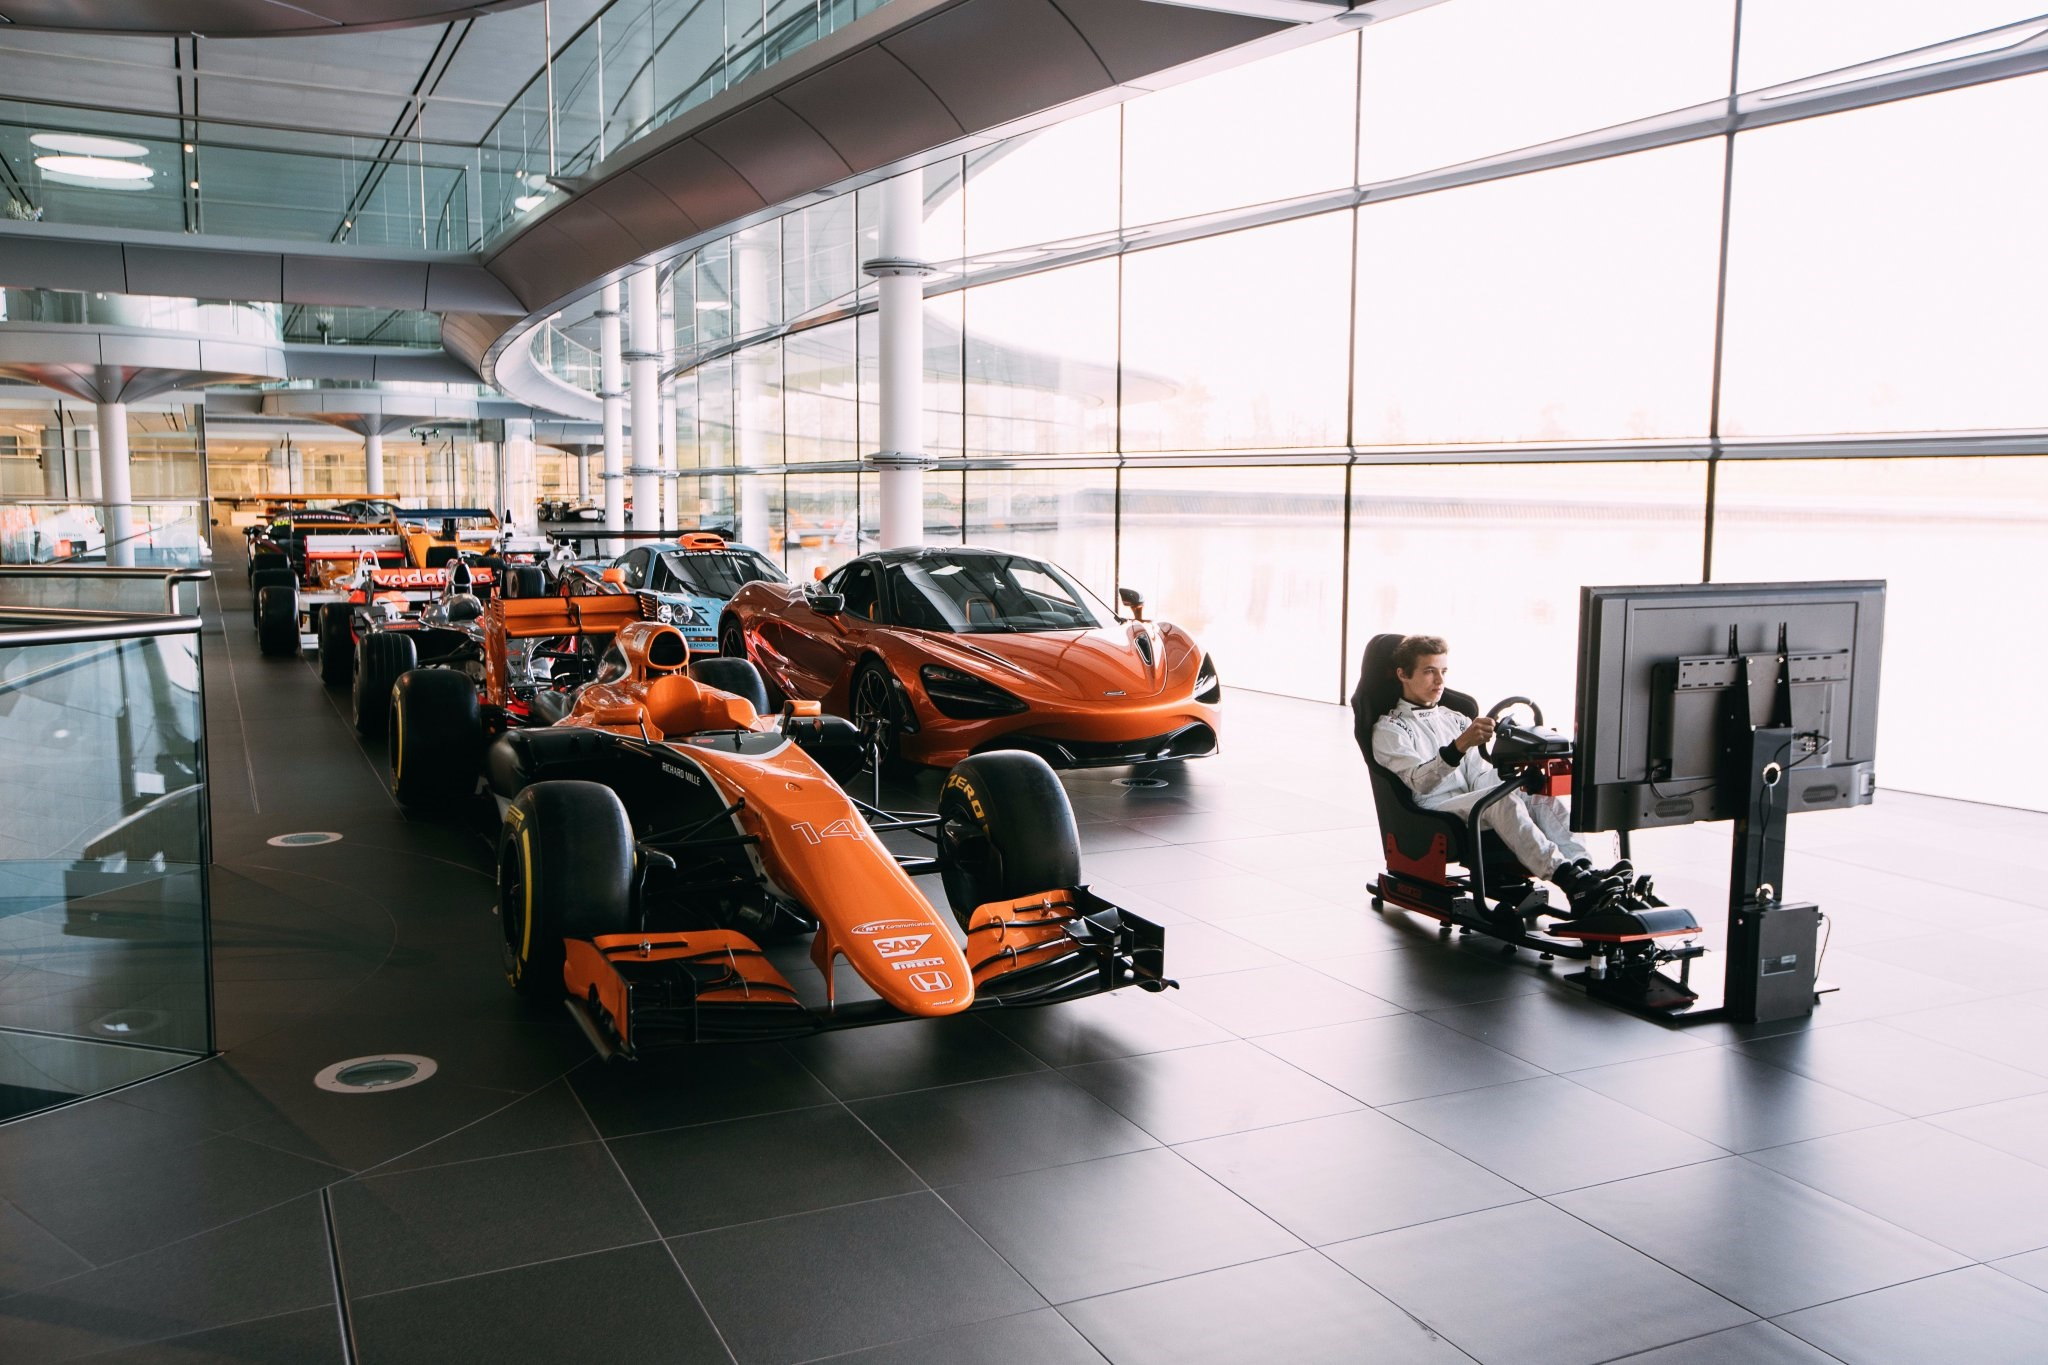 McLaren to employ 'World's Fastest Gamer' esports winner as simulator driver